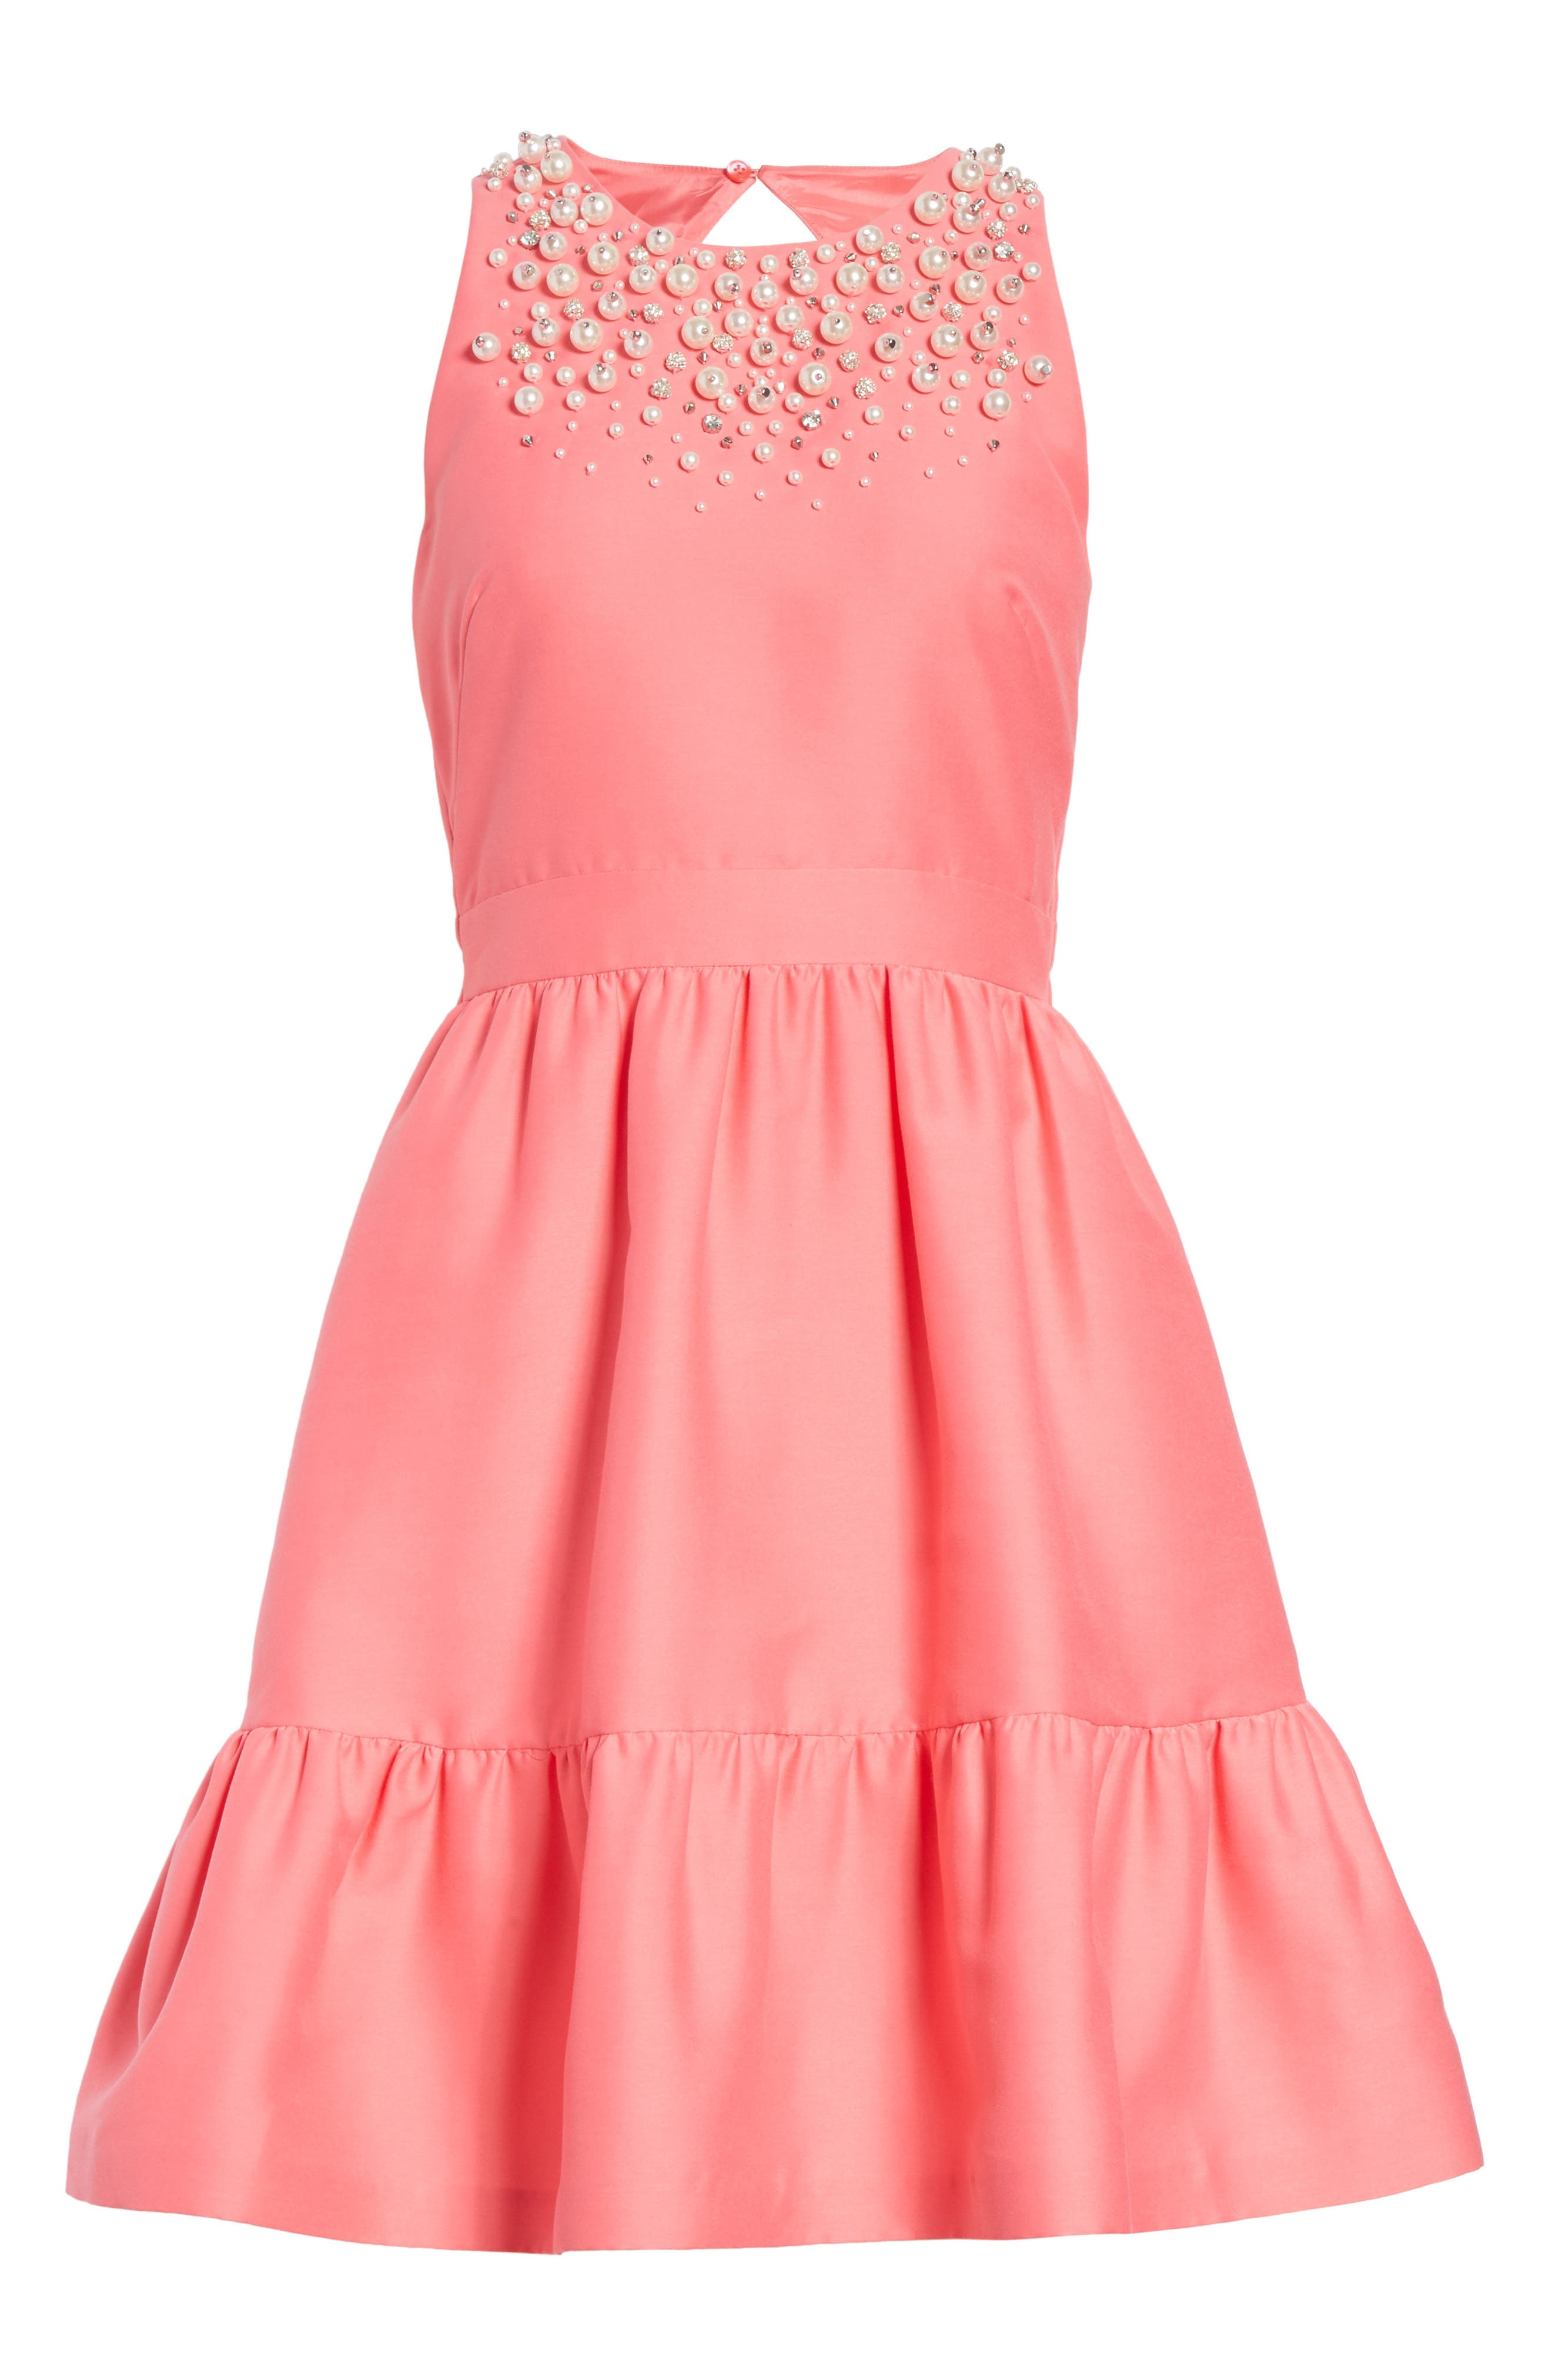 embellished mikado fit-and-flare dress,                             Alternate thumbnail 6, color,                             682